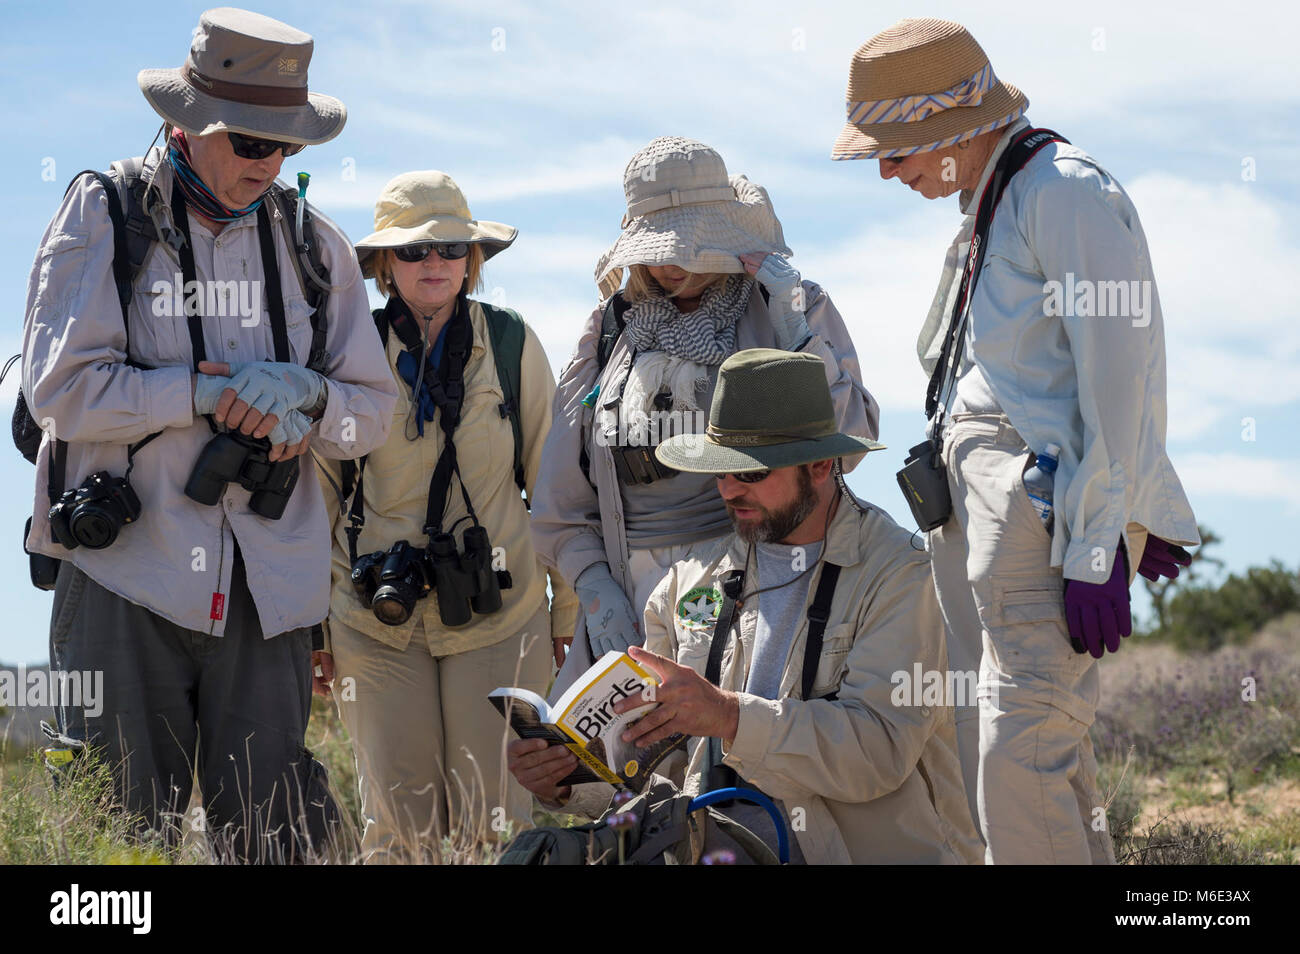 Earthwatch Volunteers Using a Field Guide to Identify Birds. Stock Photo